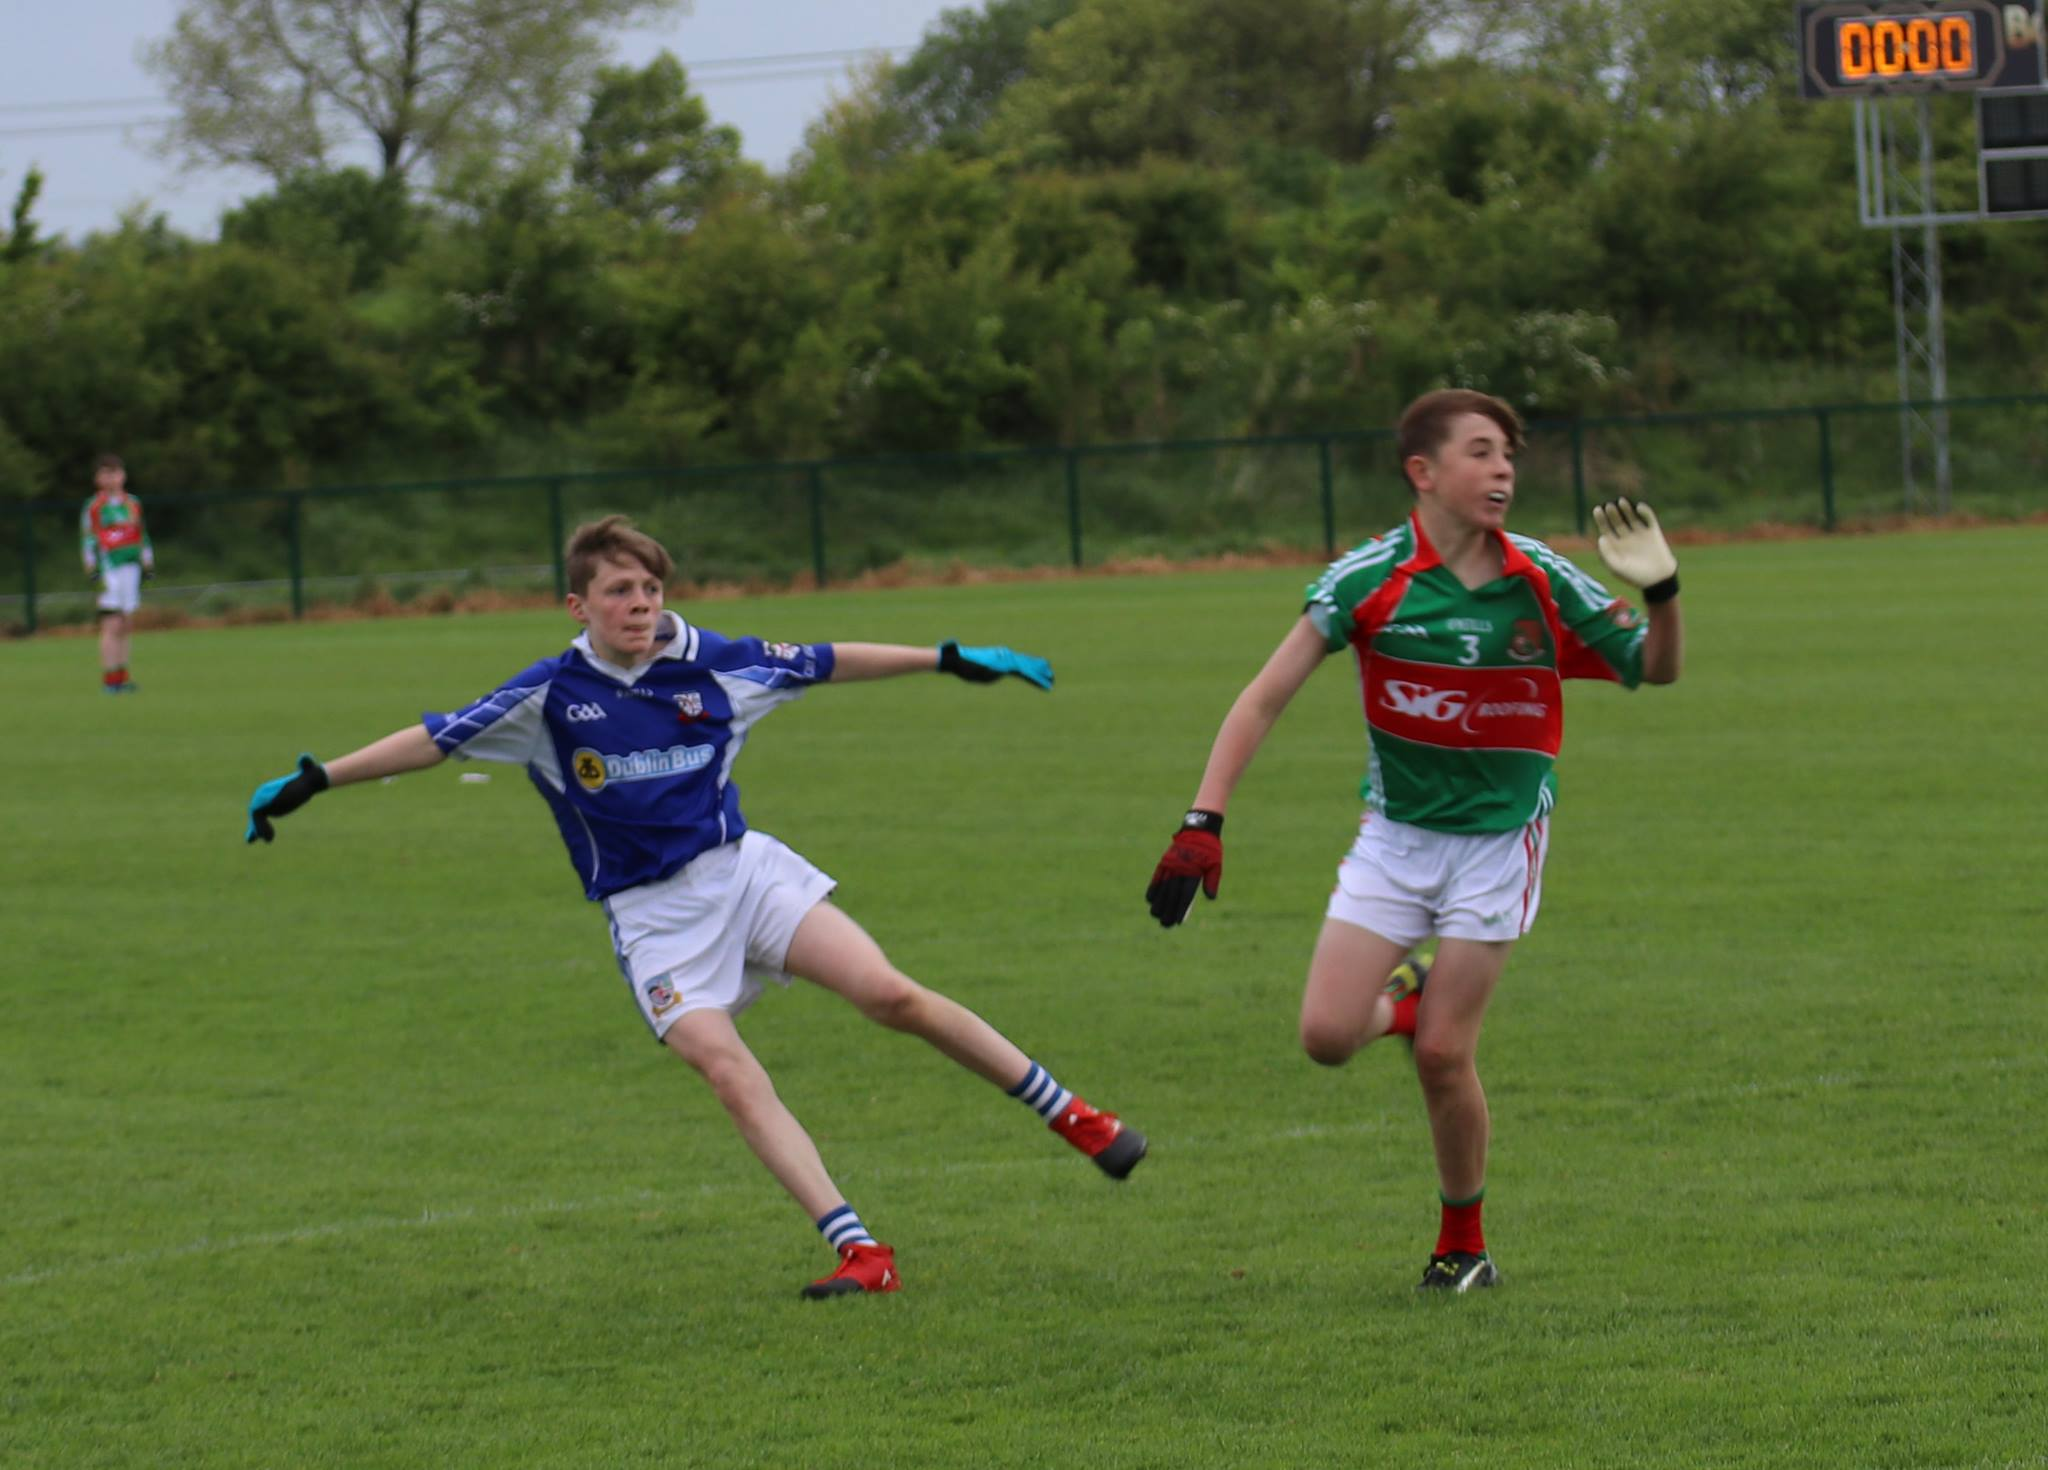 Suncroft v Celbridge Feile A Shield 18